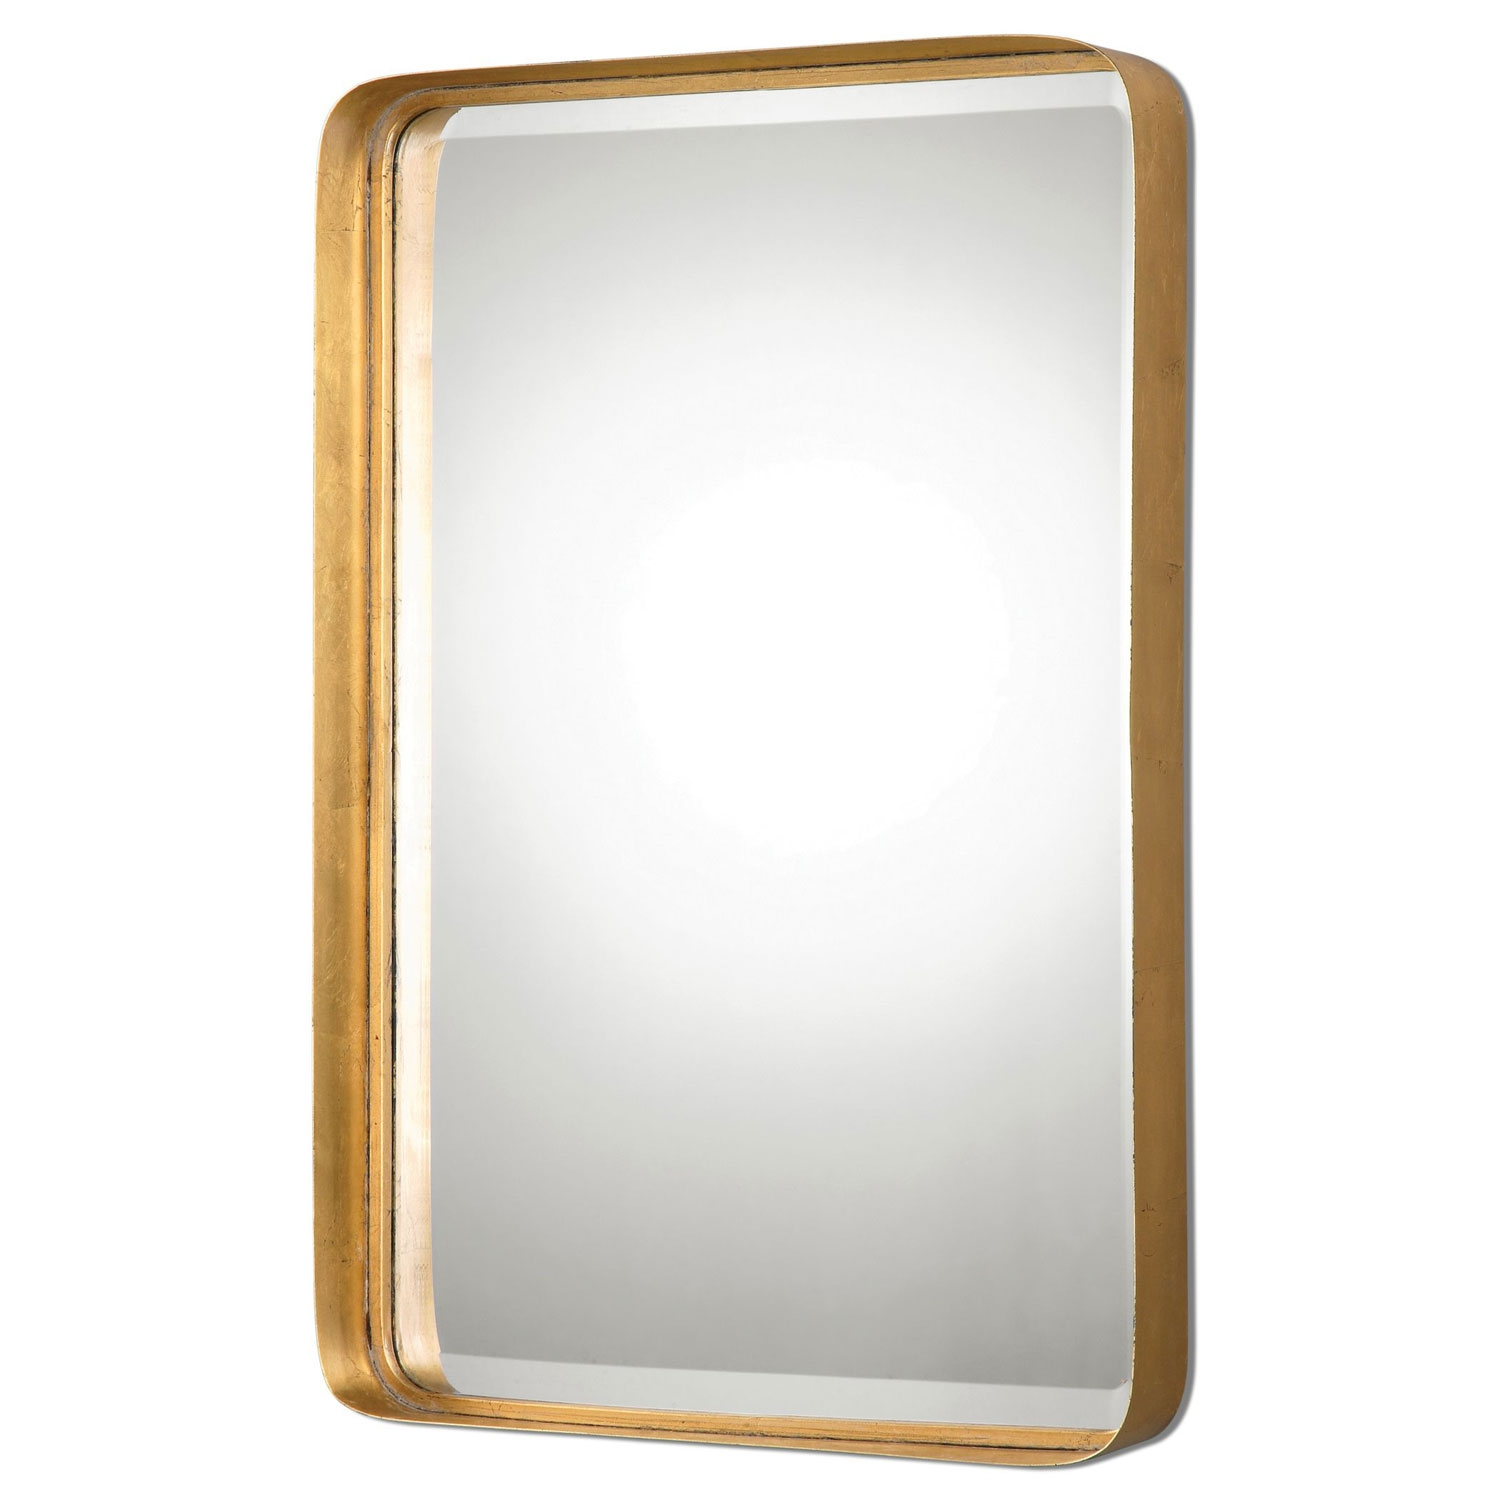 Balkan Modern Gold Wall Mirror Uttermost Rectangle Mirrors Home Decor Within Modern Gold Mirror (Image 1 of 15)